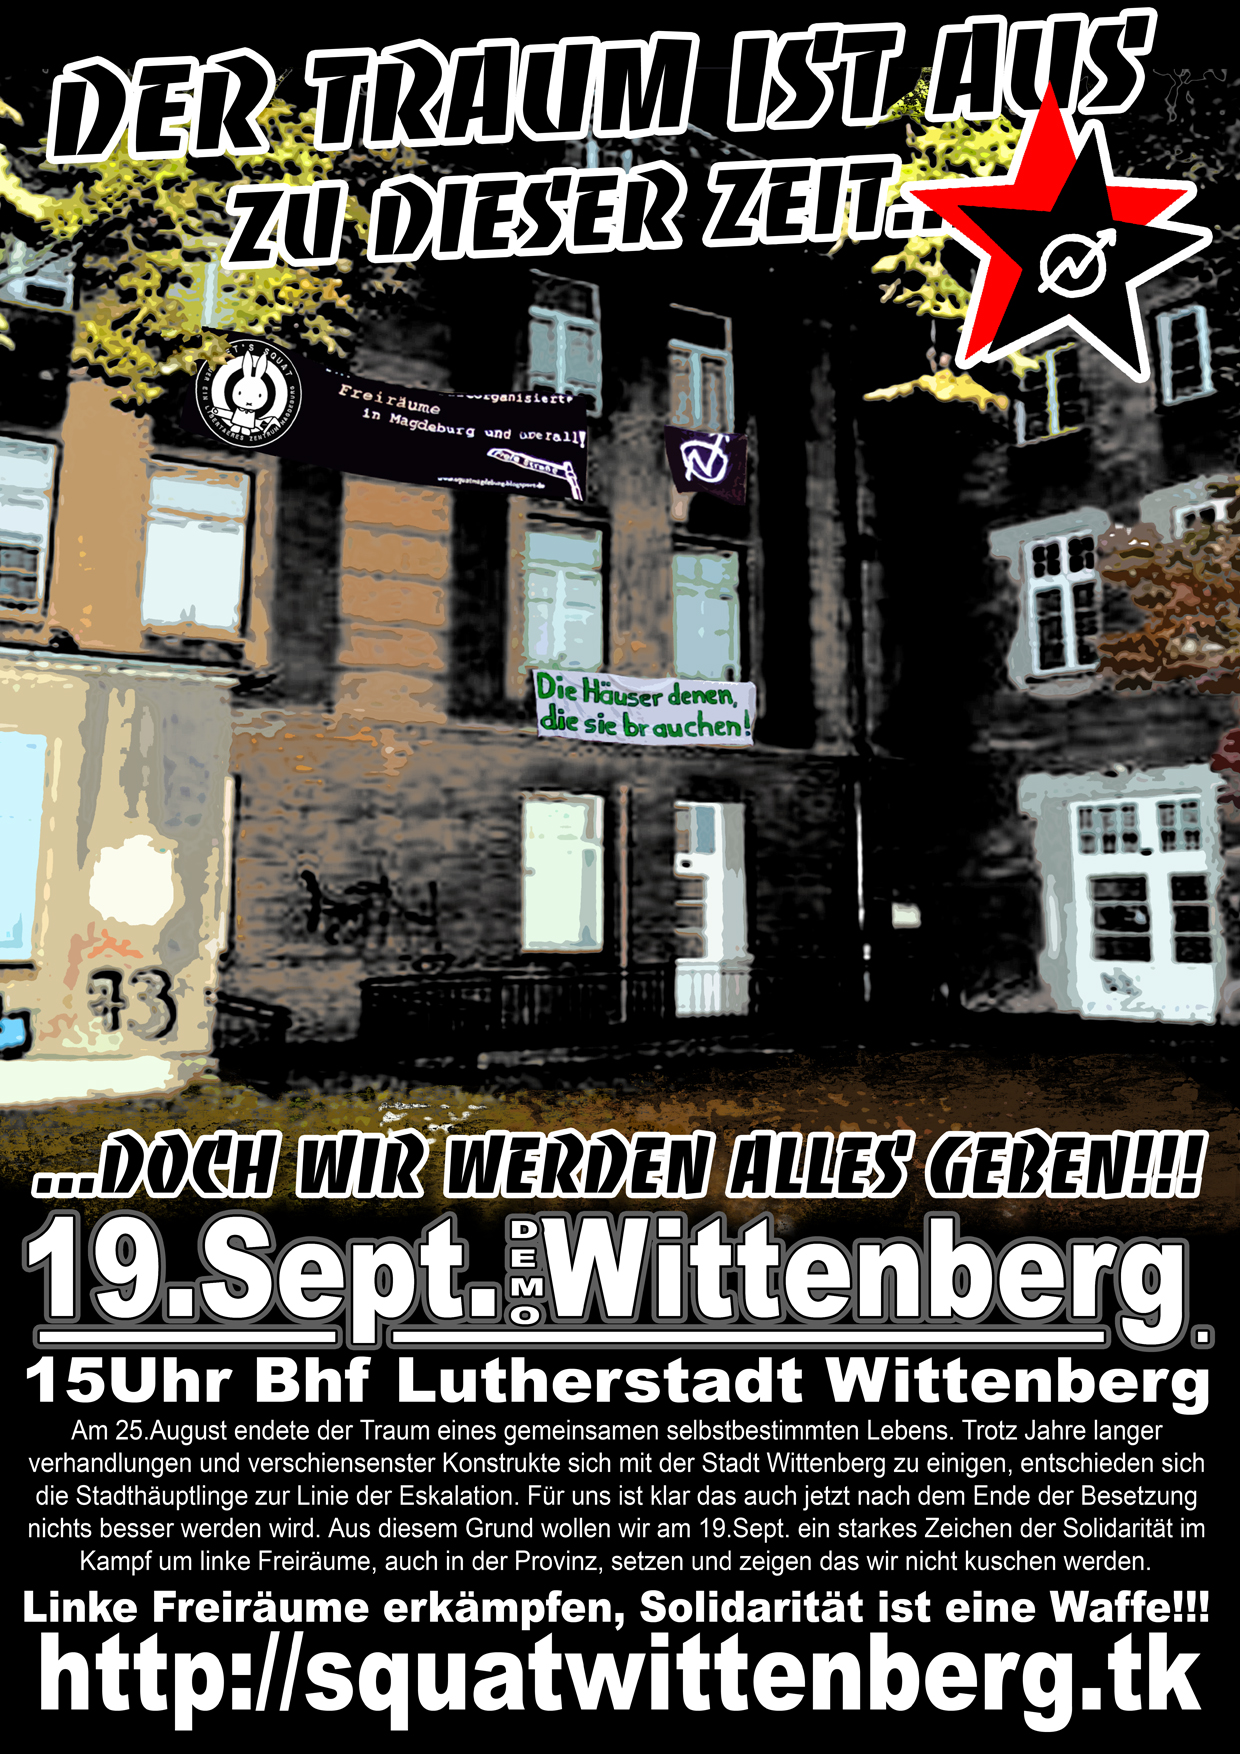 squatwittenberg